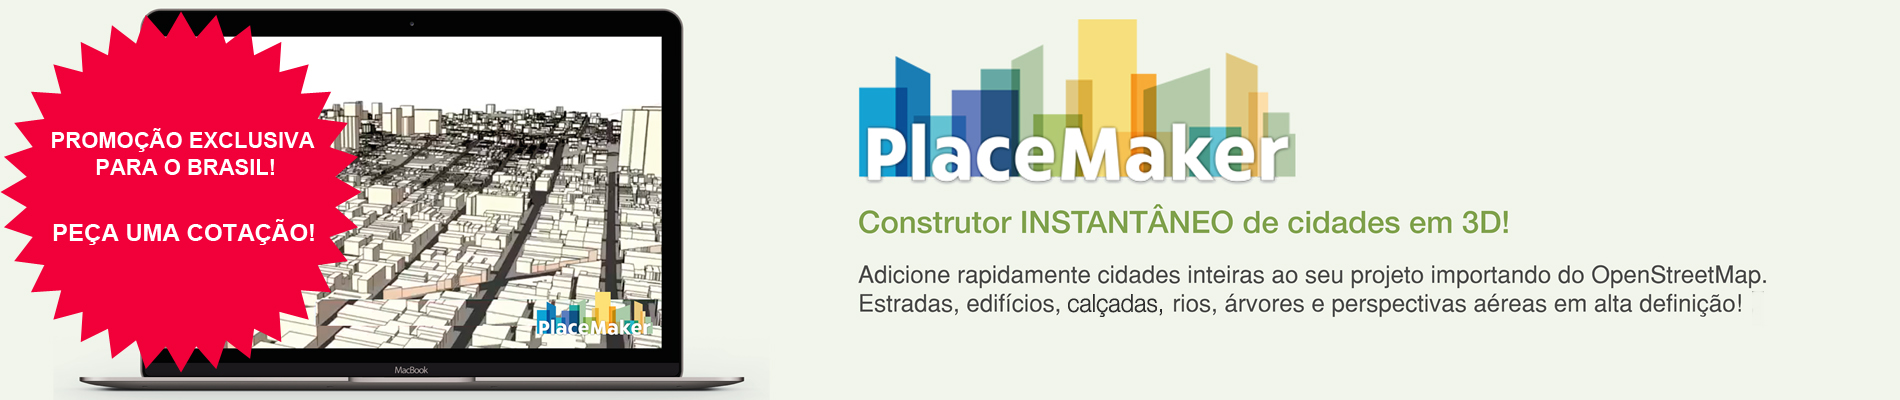 banner_placemaker